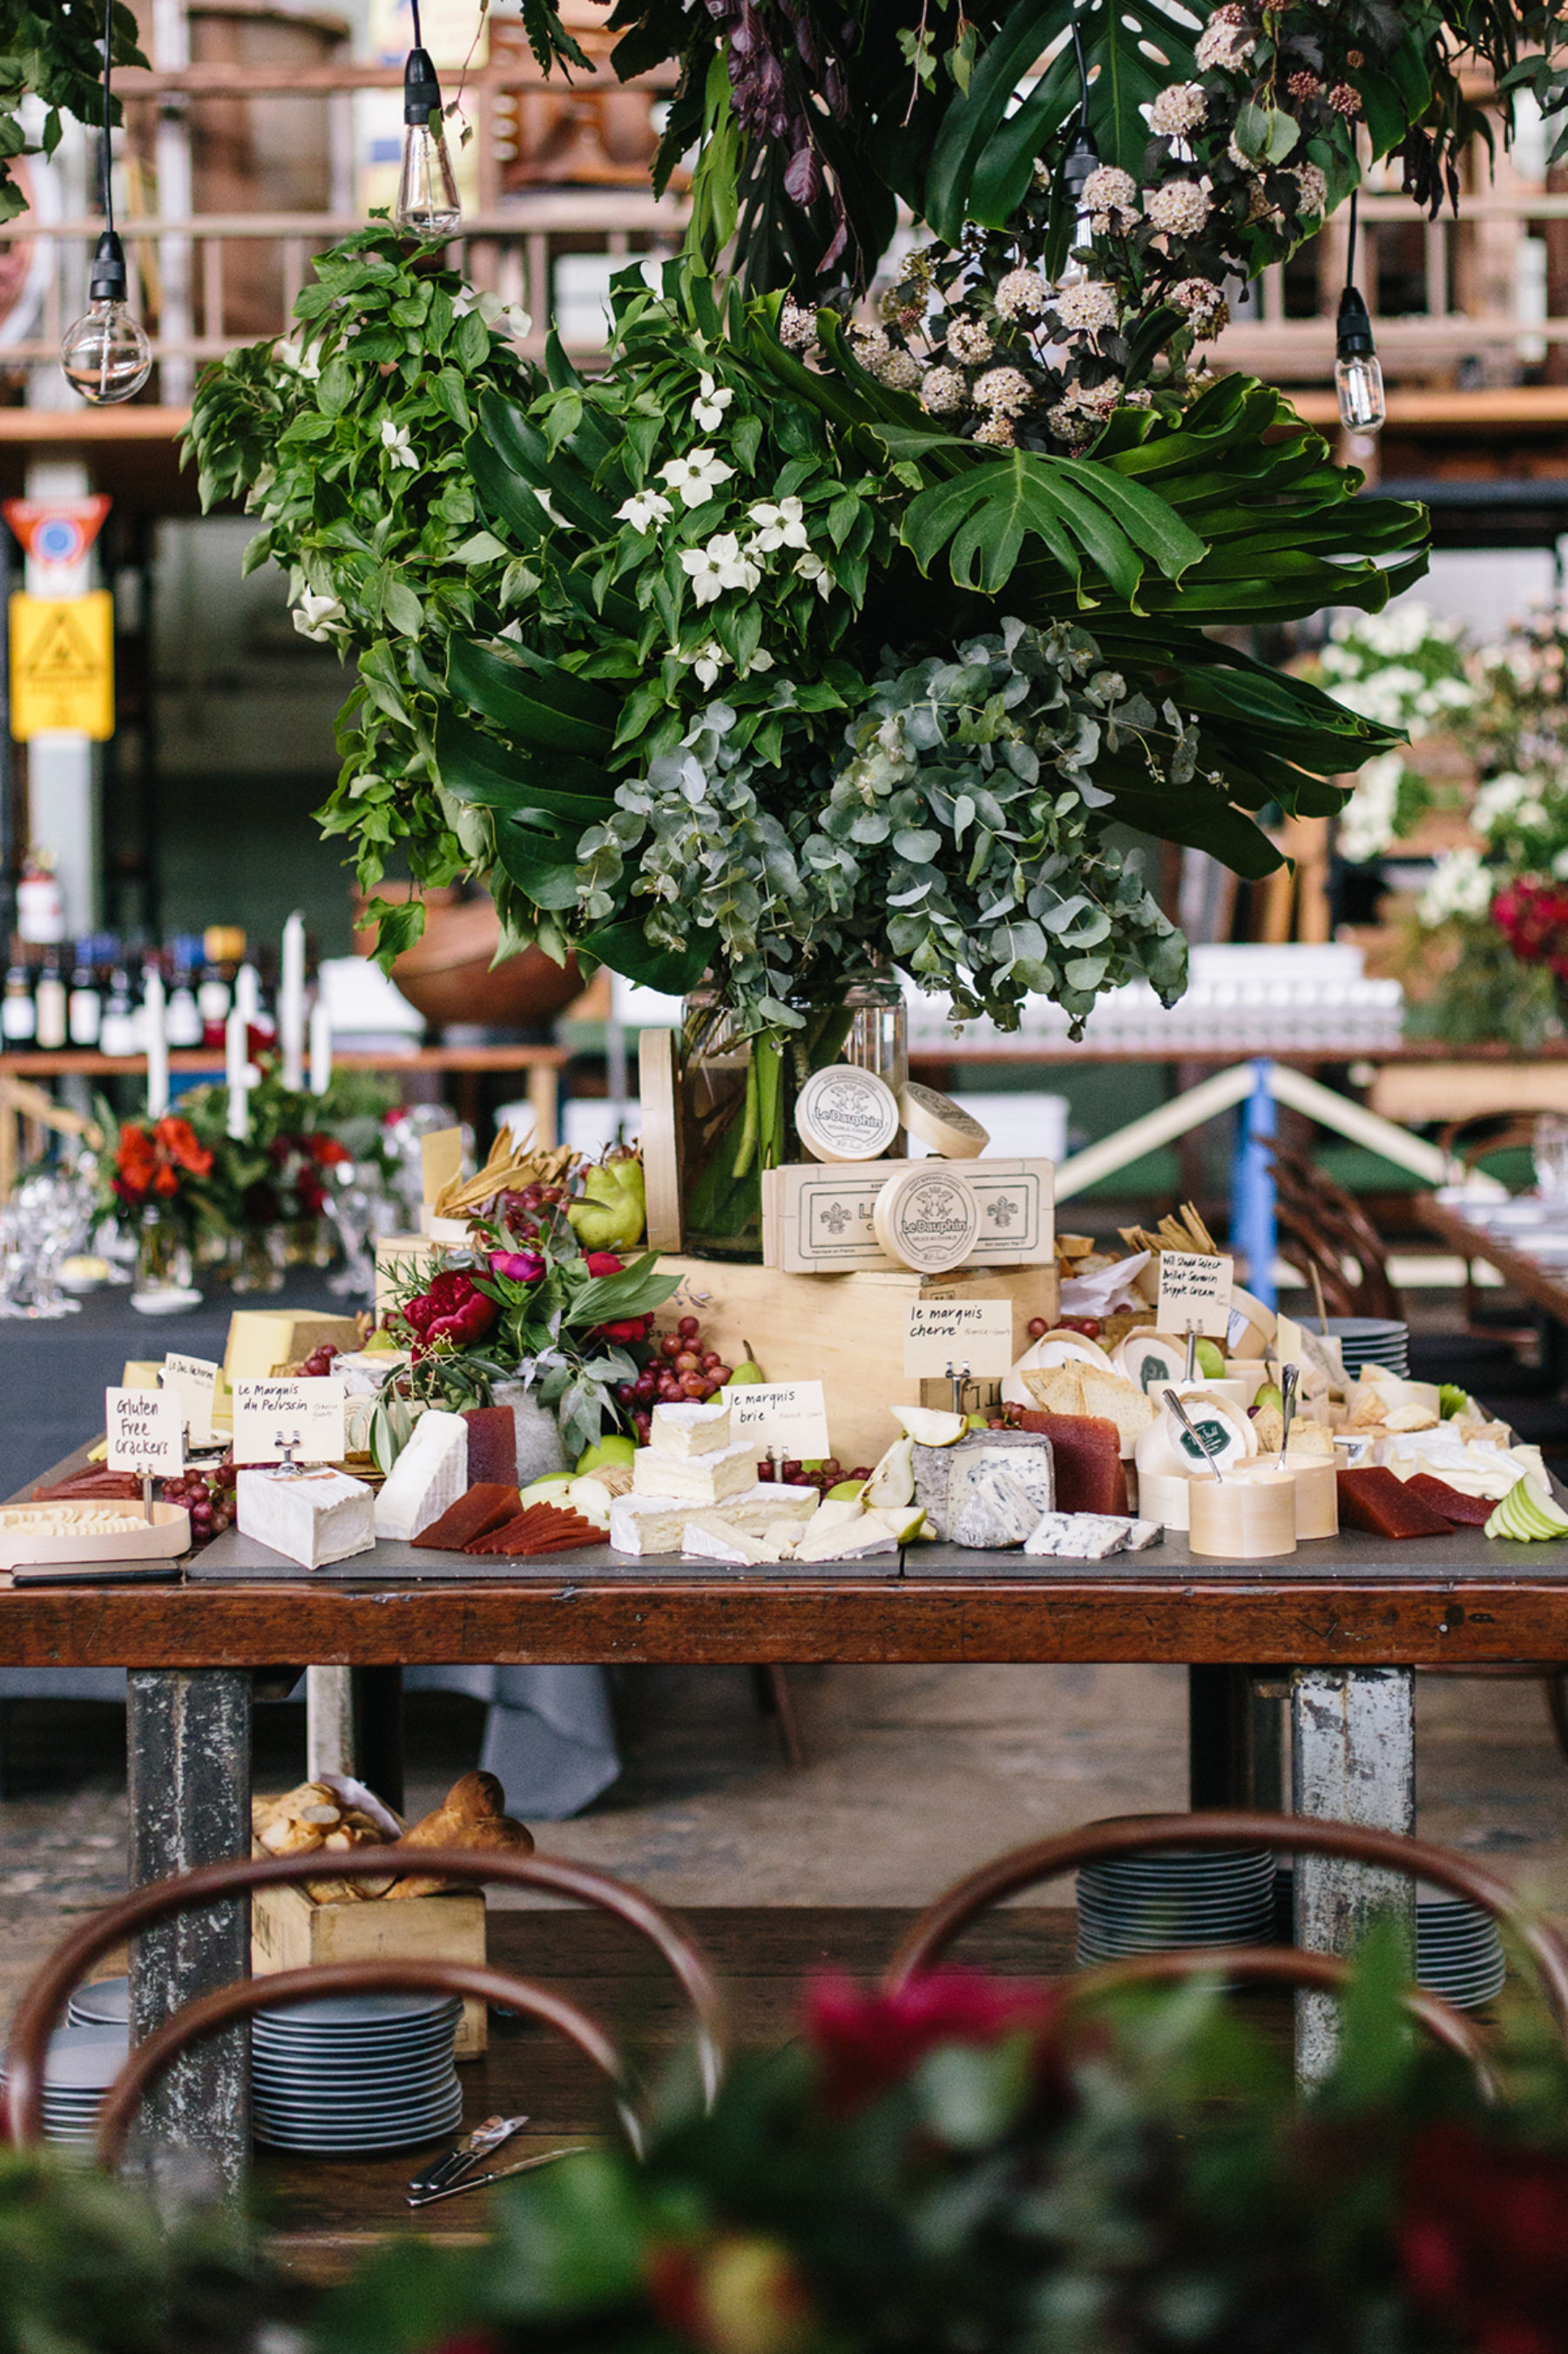 epic cheese grazing table by Ed Dixon Food Design